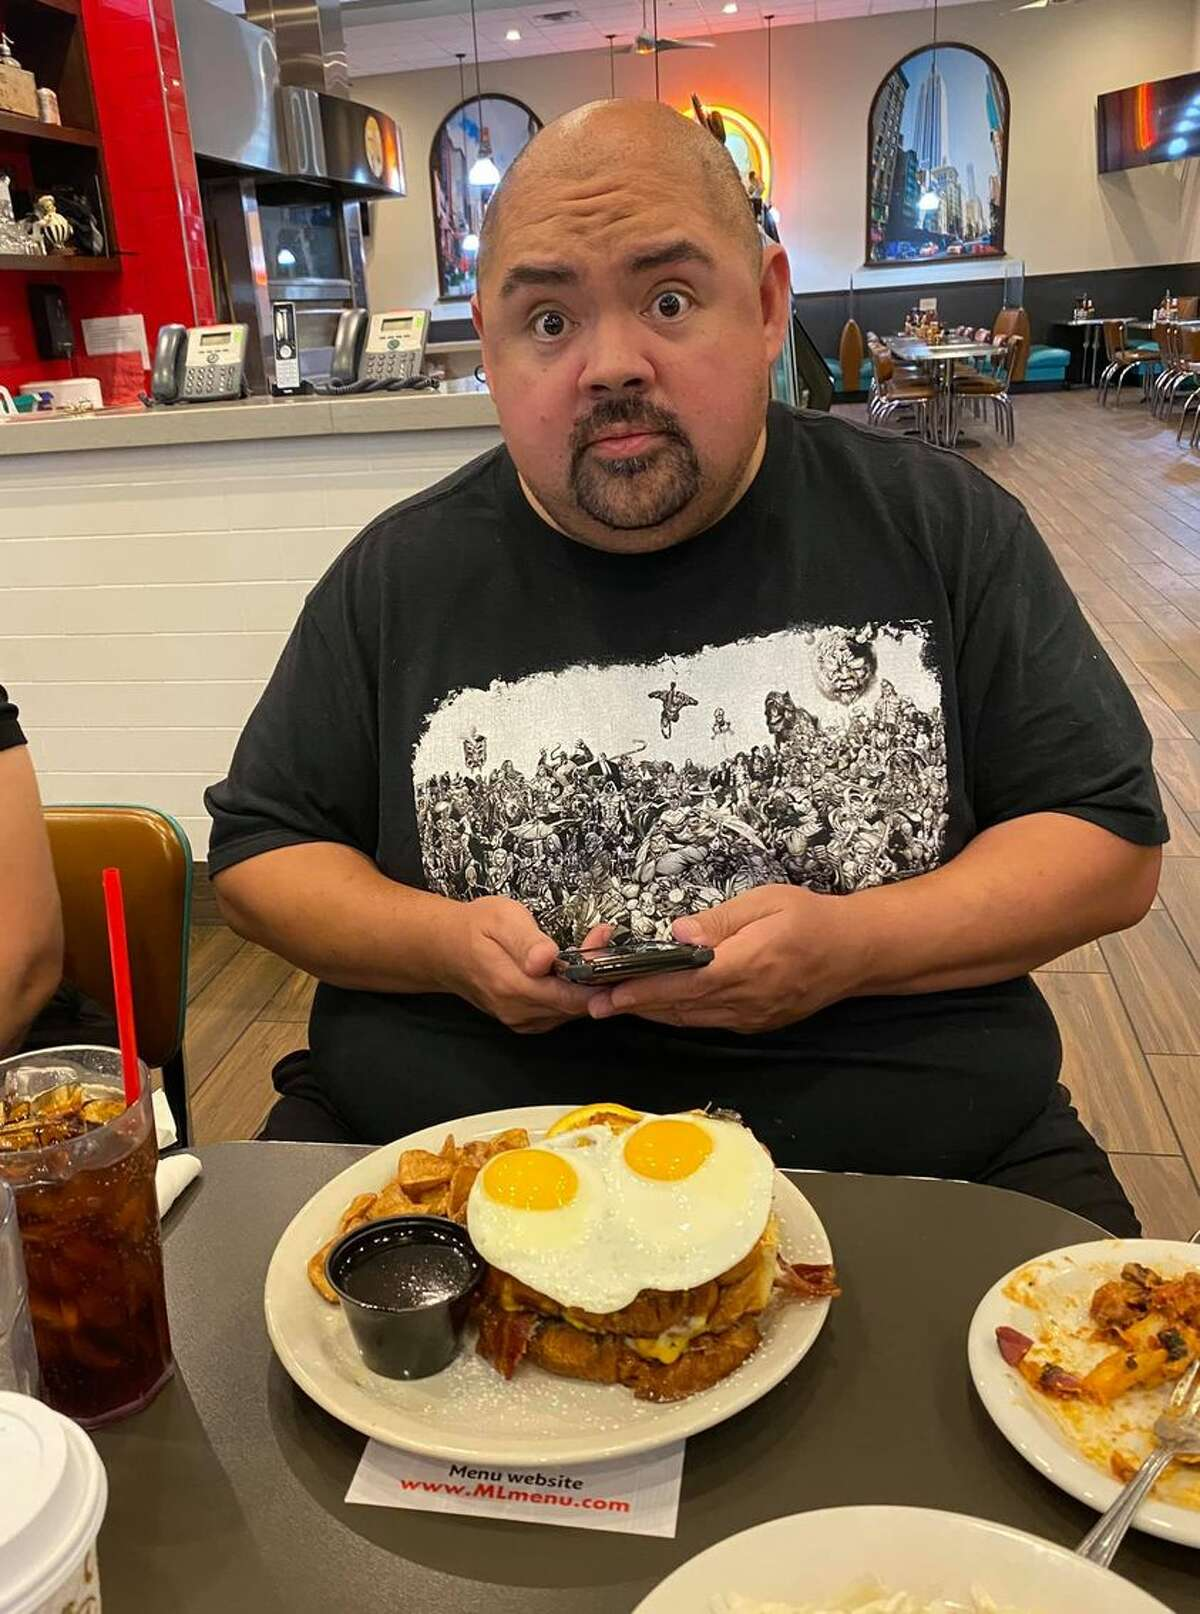 Gabriel Iglesias is nearing the end of his 27-show stint, but not before giving a local restaurant some of his business.